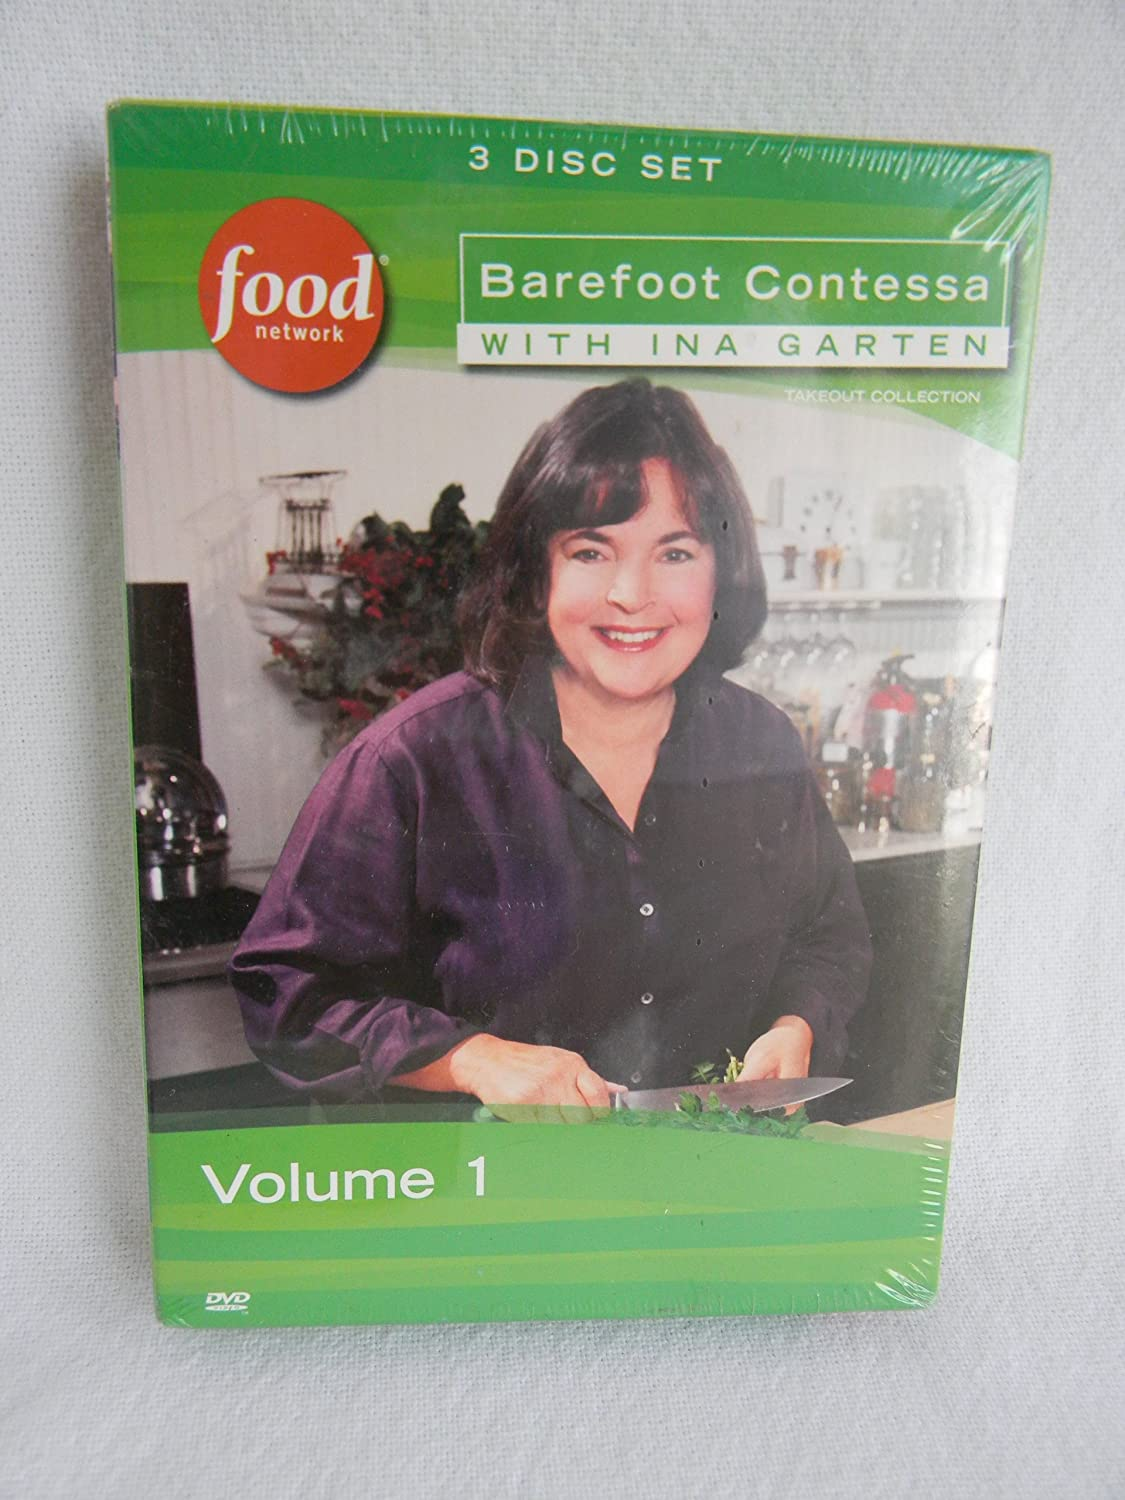 Food Network Barefoot Contessa with Ina Garten Volume 1 DVD